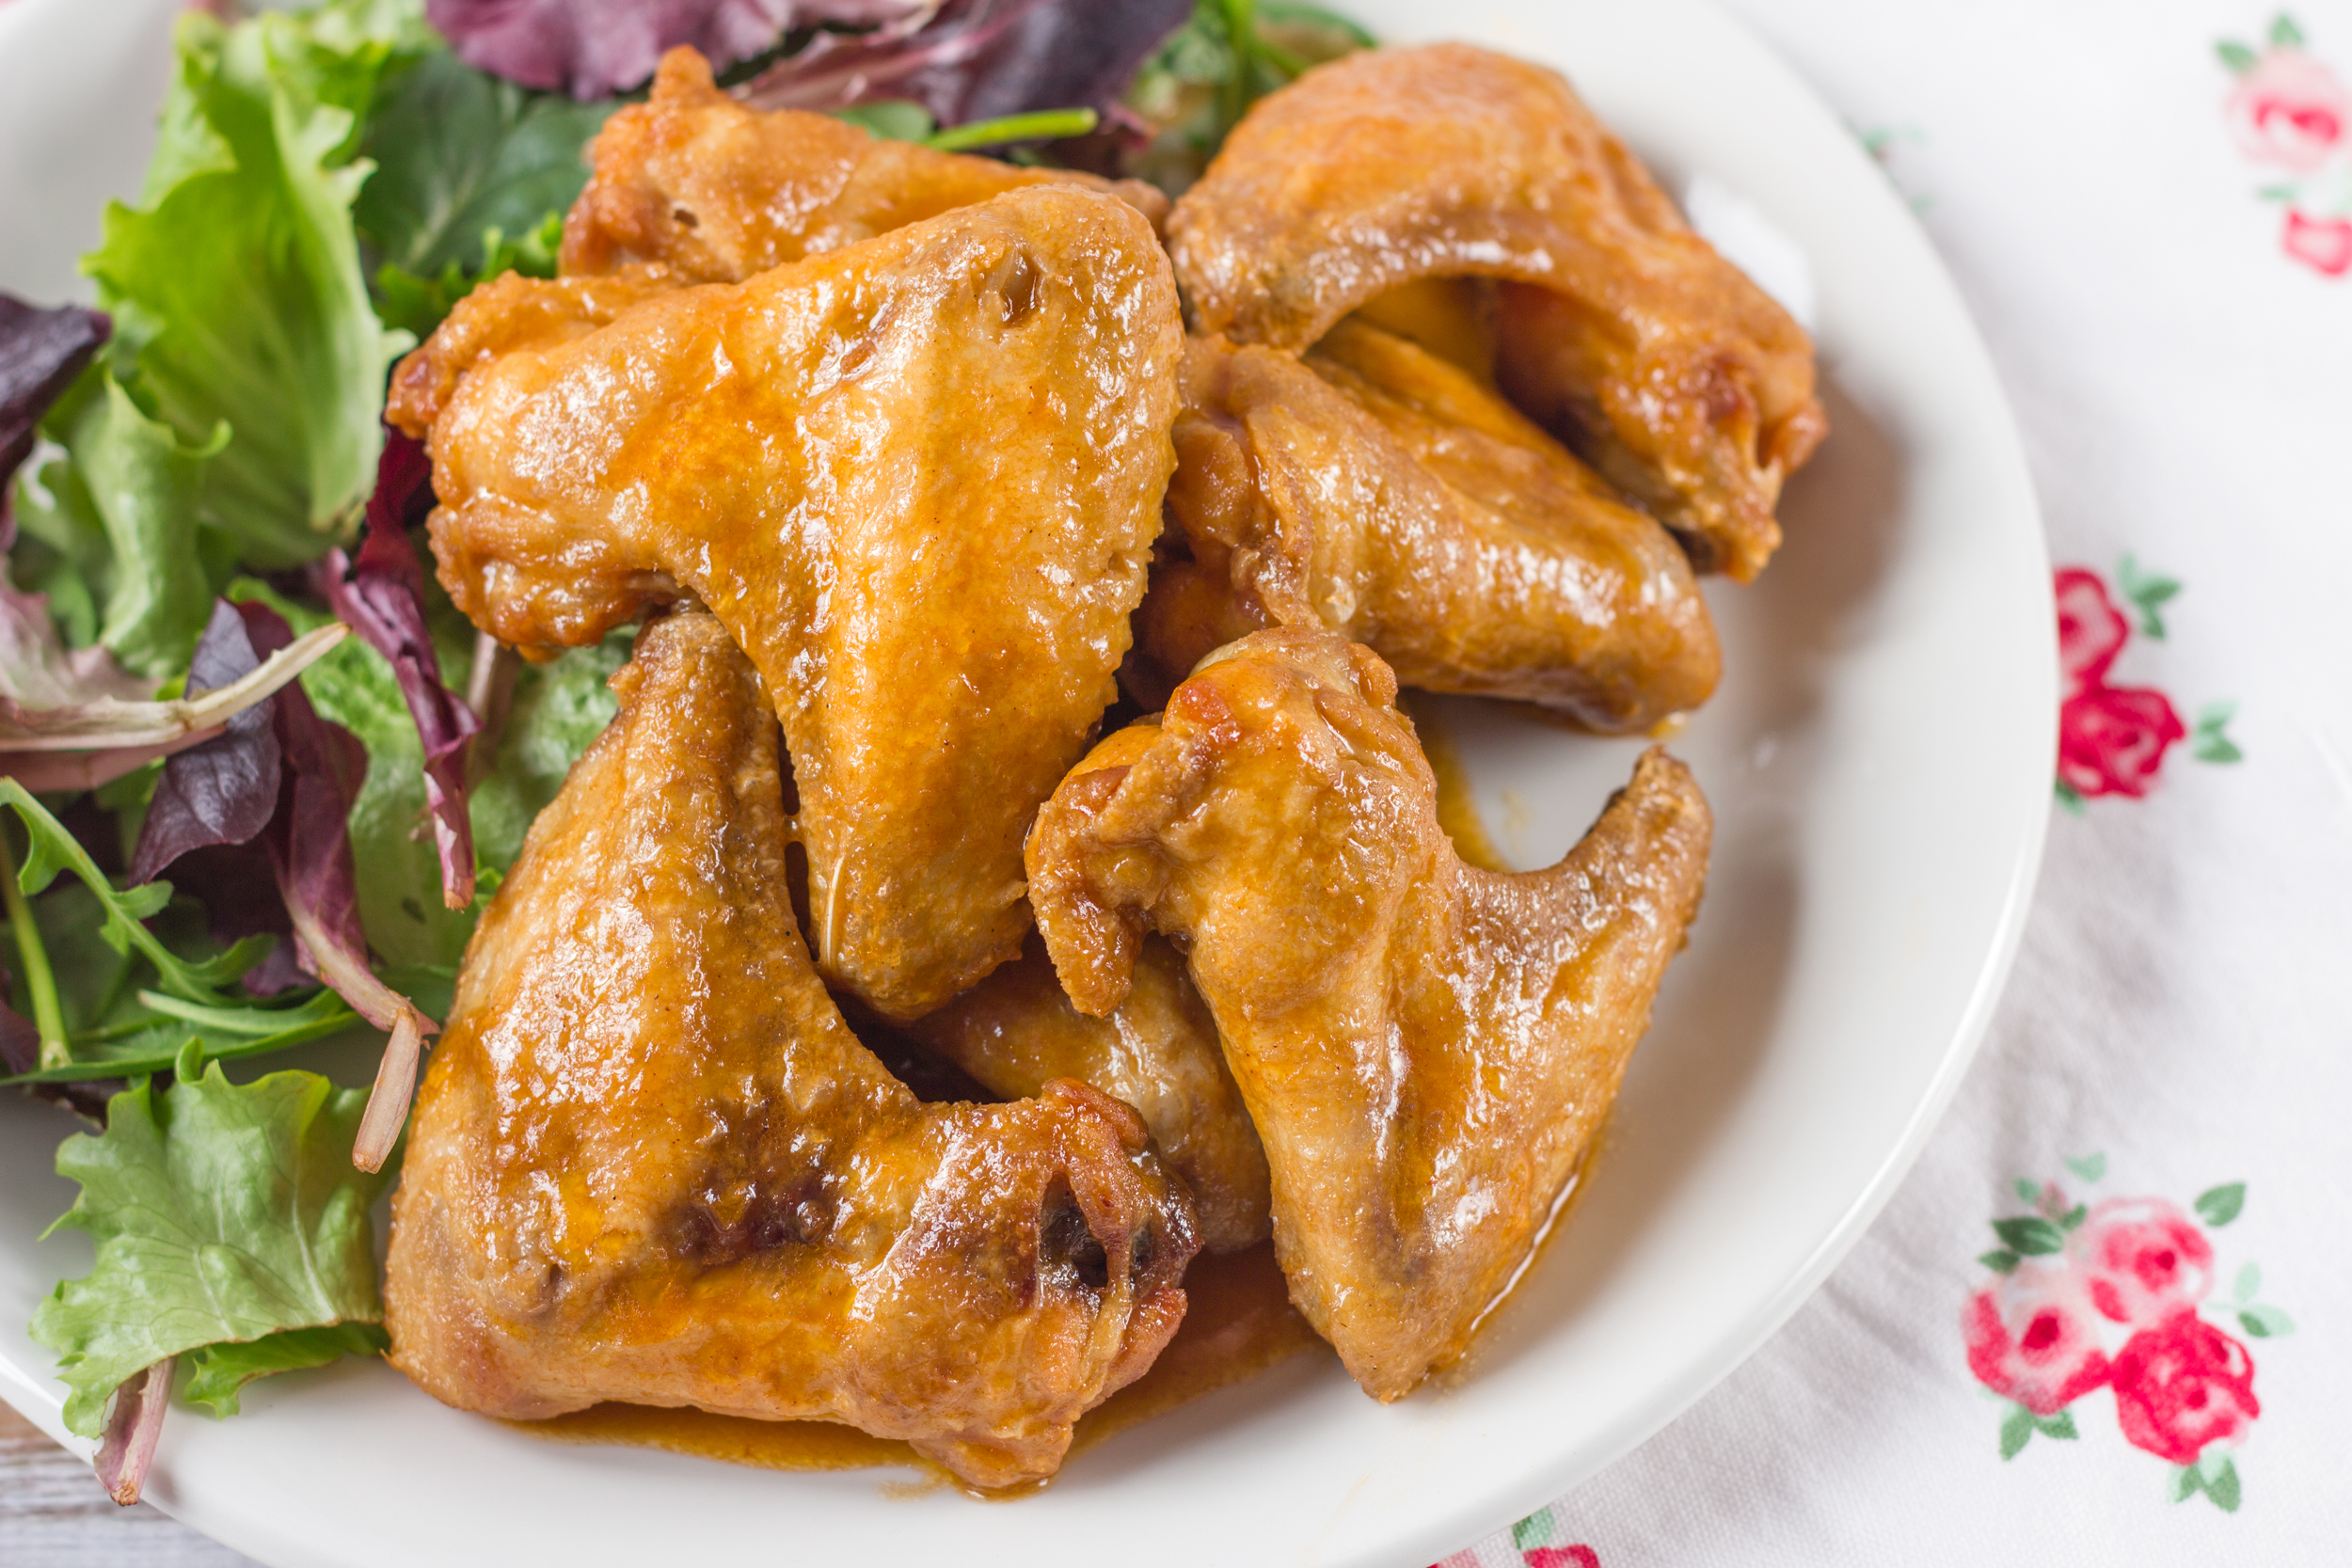 Fly high with our blistering buffalo wings. If you have a hankering for spicy foods, these piping hot wings are sure to quell you cravings. Don't be a chicken -- give them a try tonight. Dump a 5 lb. bag of frozen wings into a big pan (like a roaster or lasagna pan), add half a lb. of butter and a.